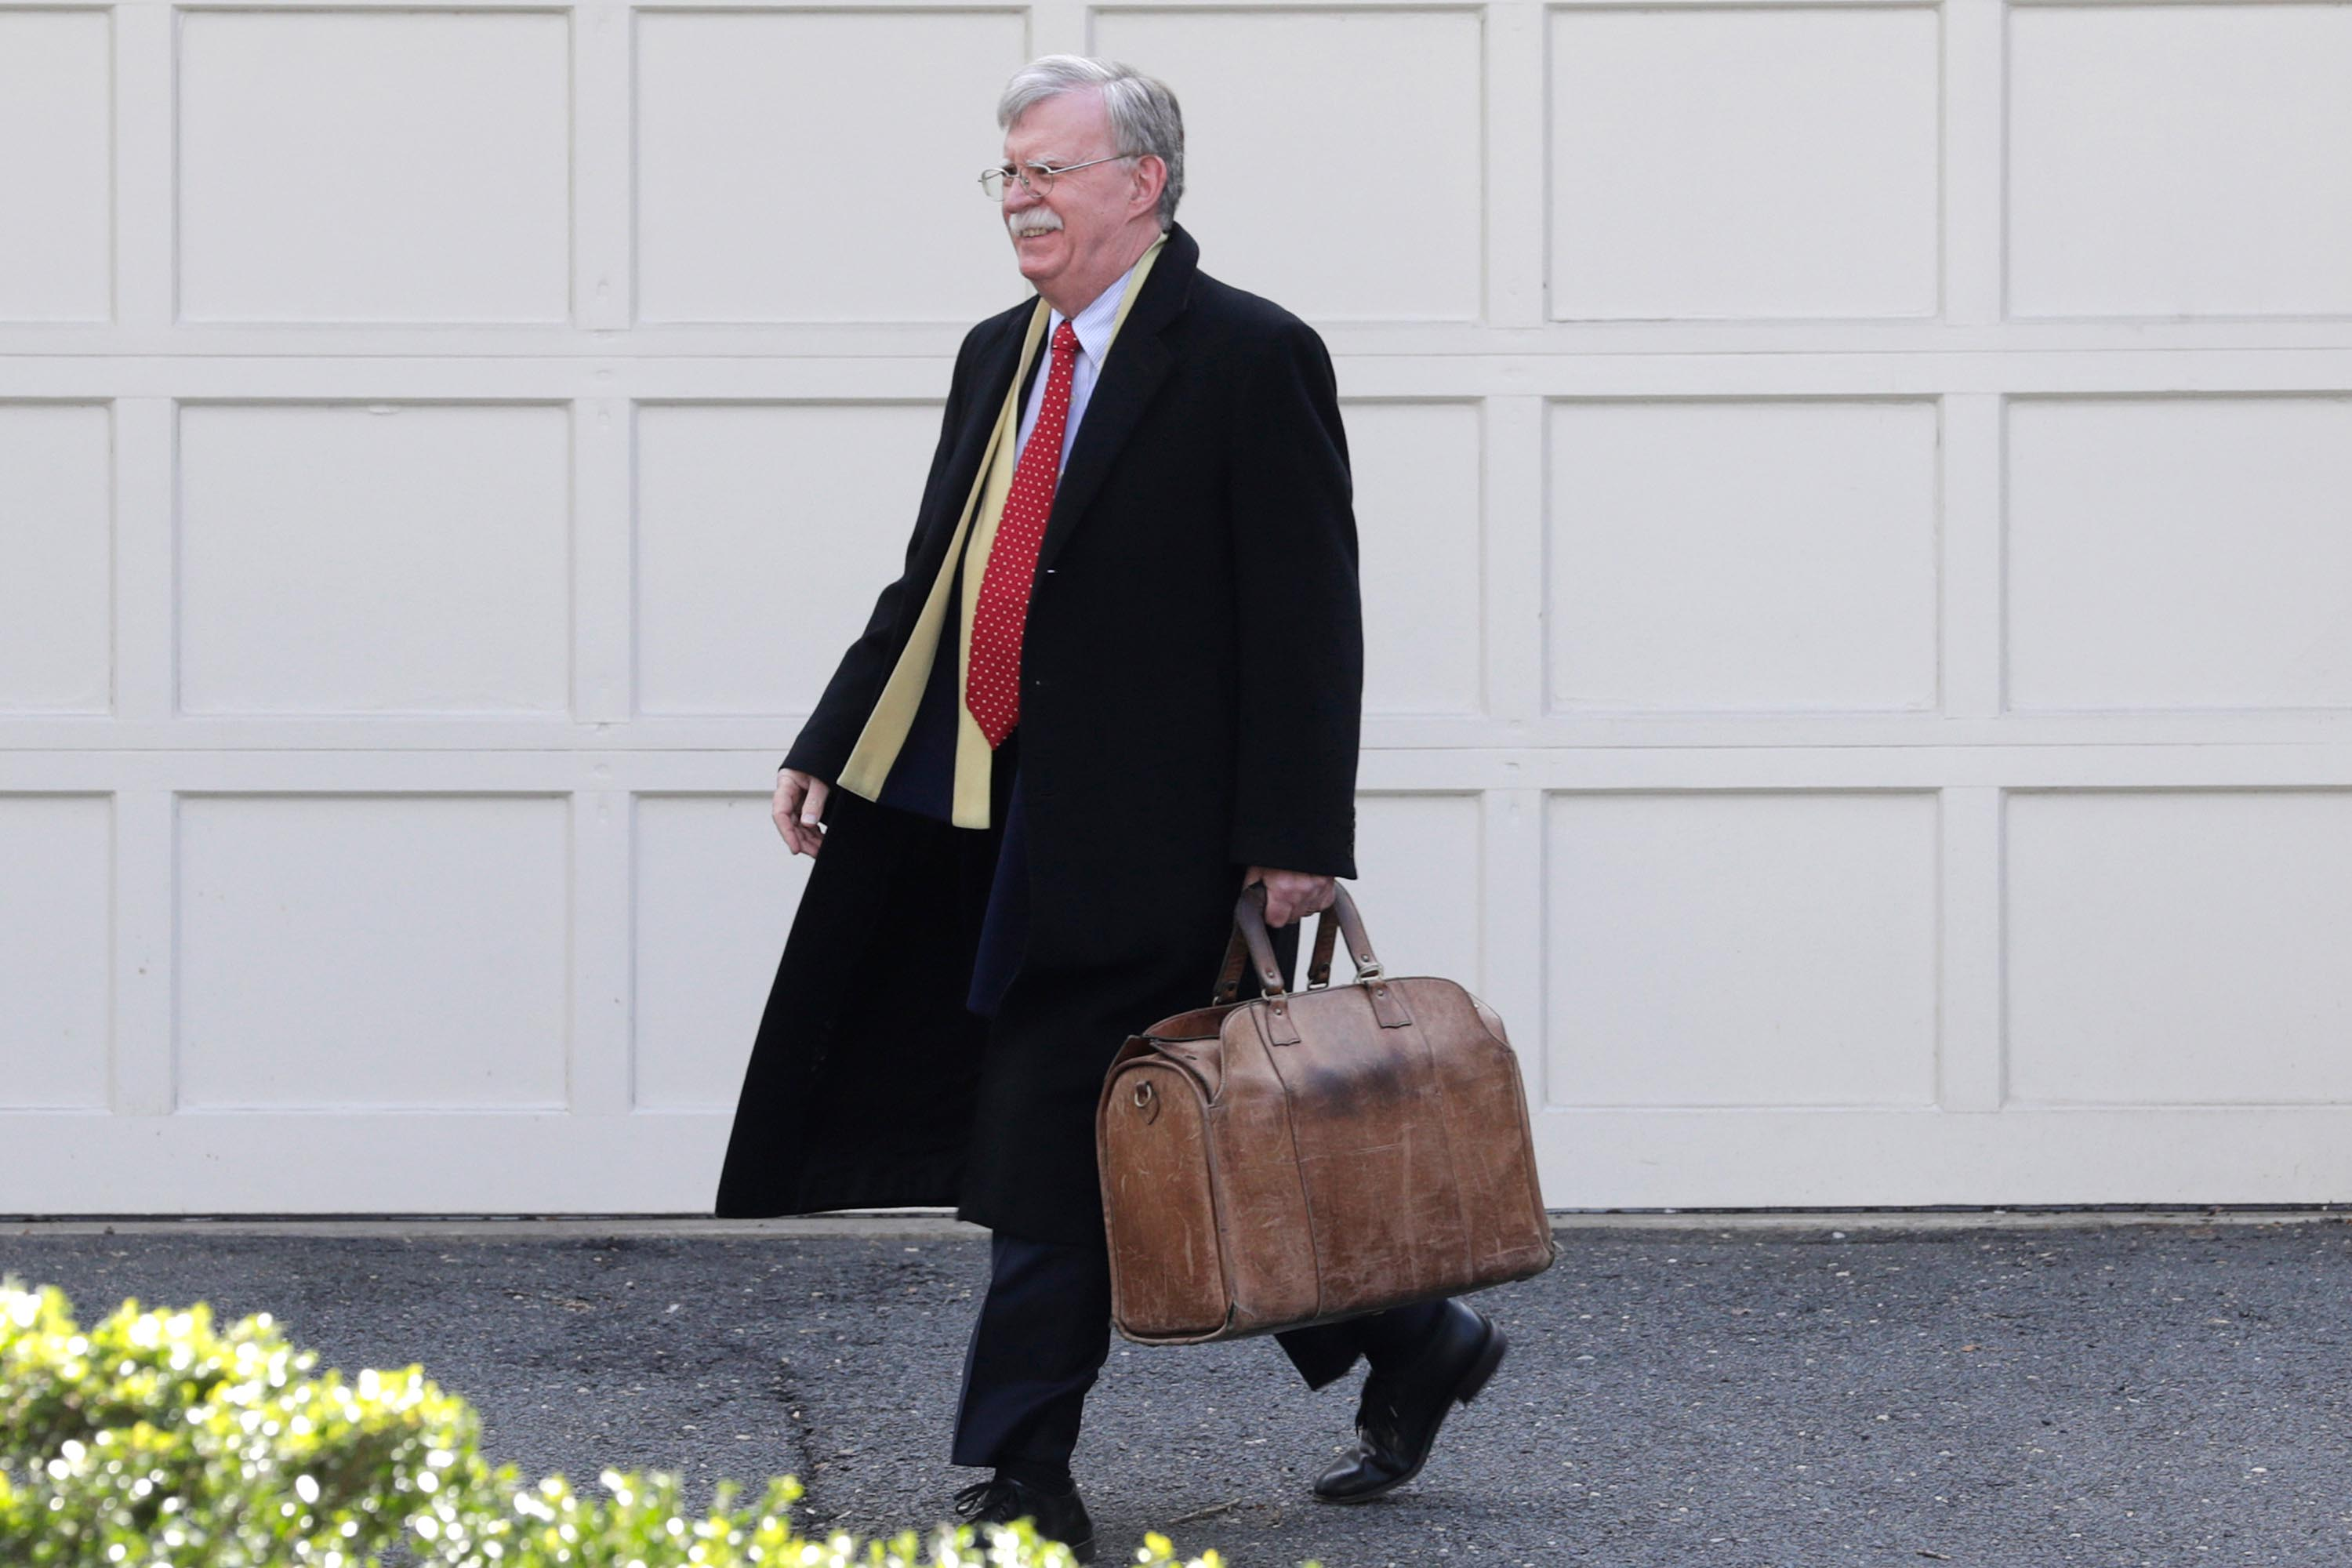 Some Republican senators want to review Bolton's manuscript in a classified setting. It's not clear if that would be legal.